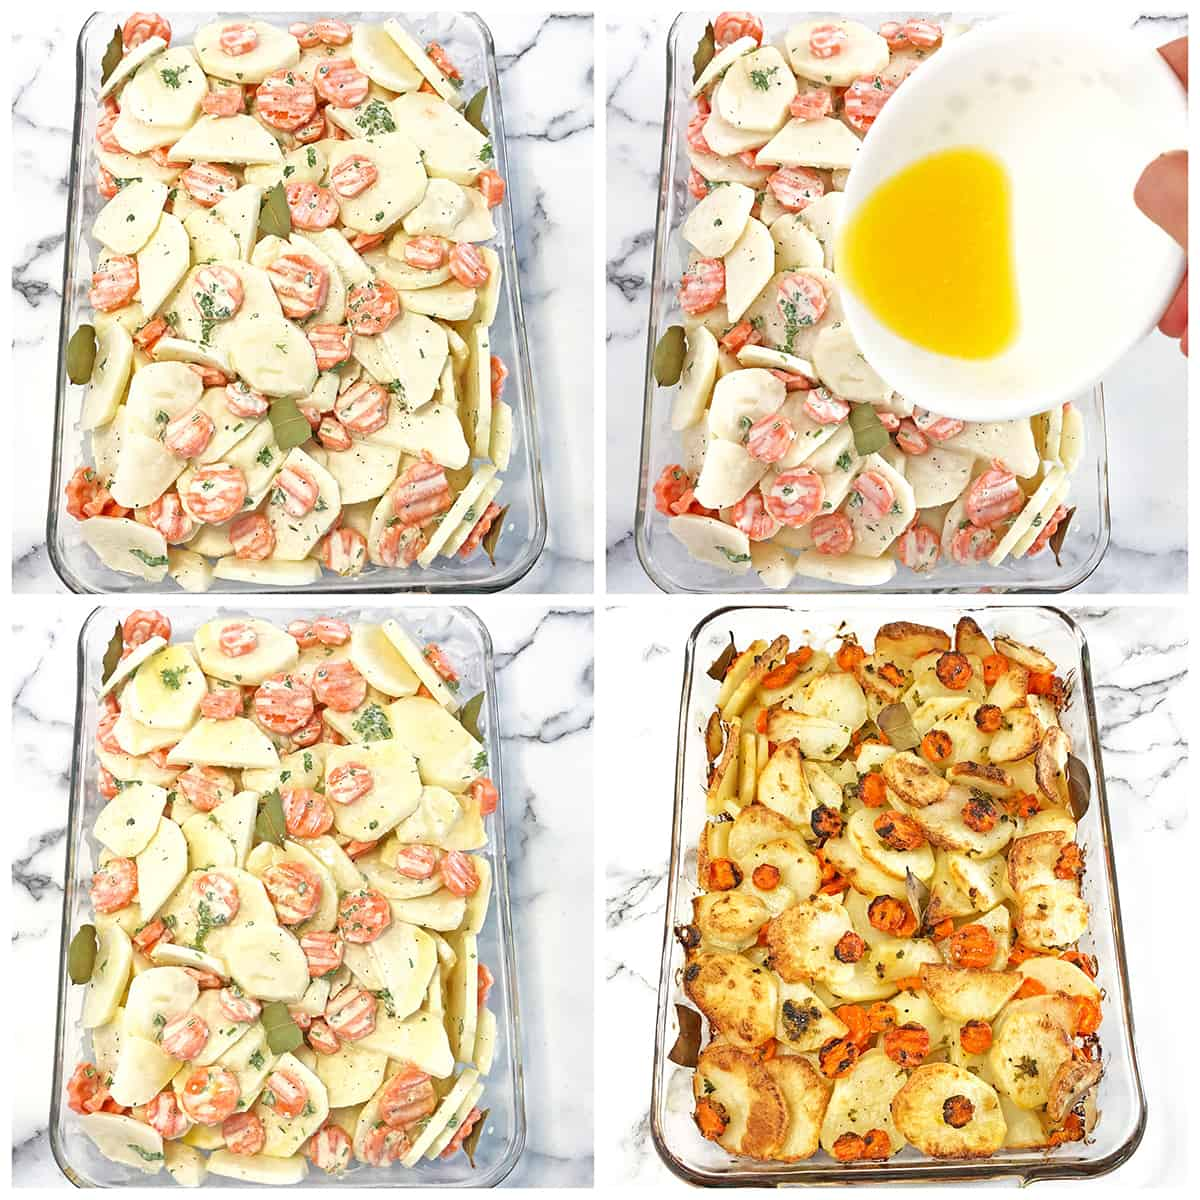 Scalloped Potatoes with Carrots Baking Instructions